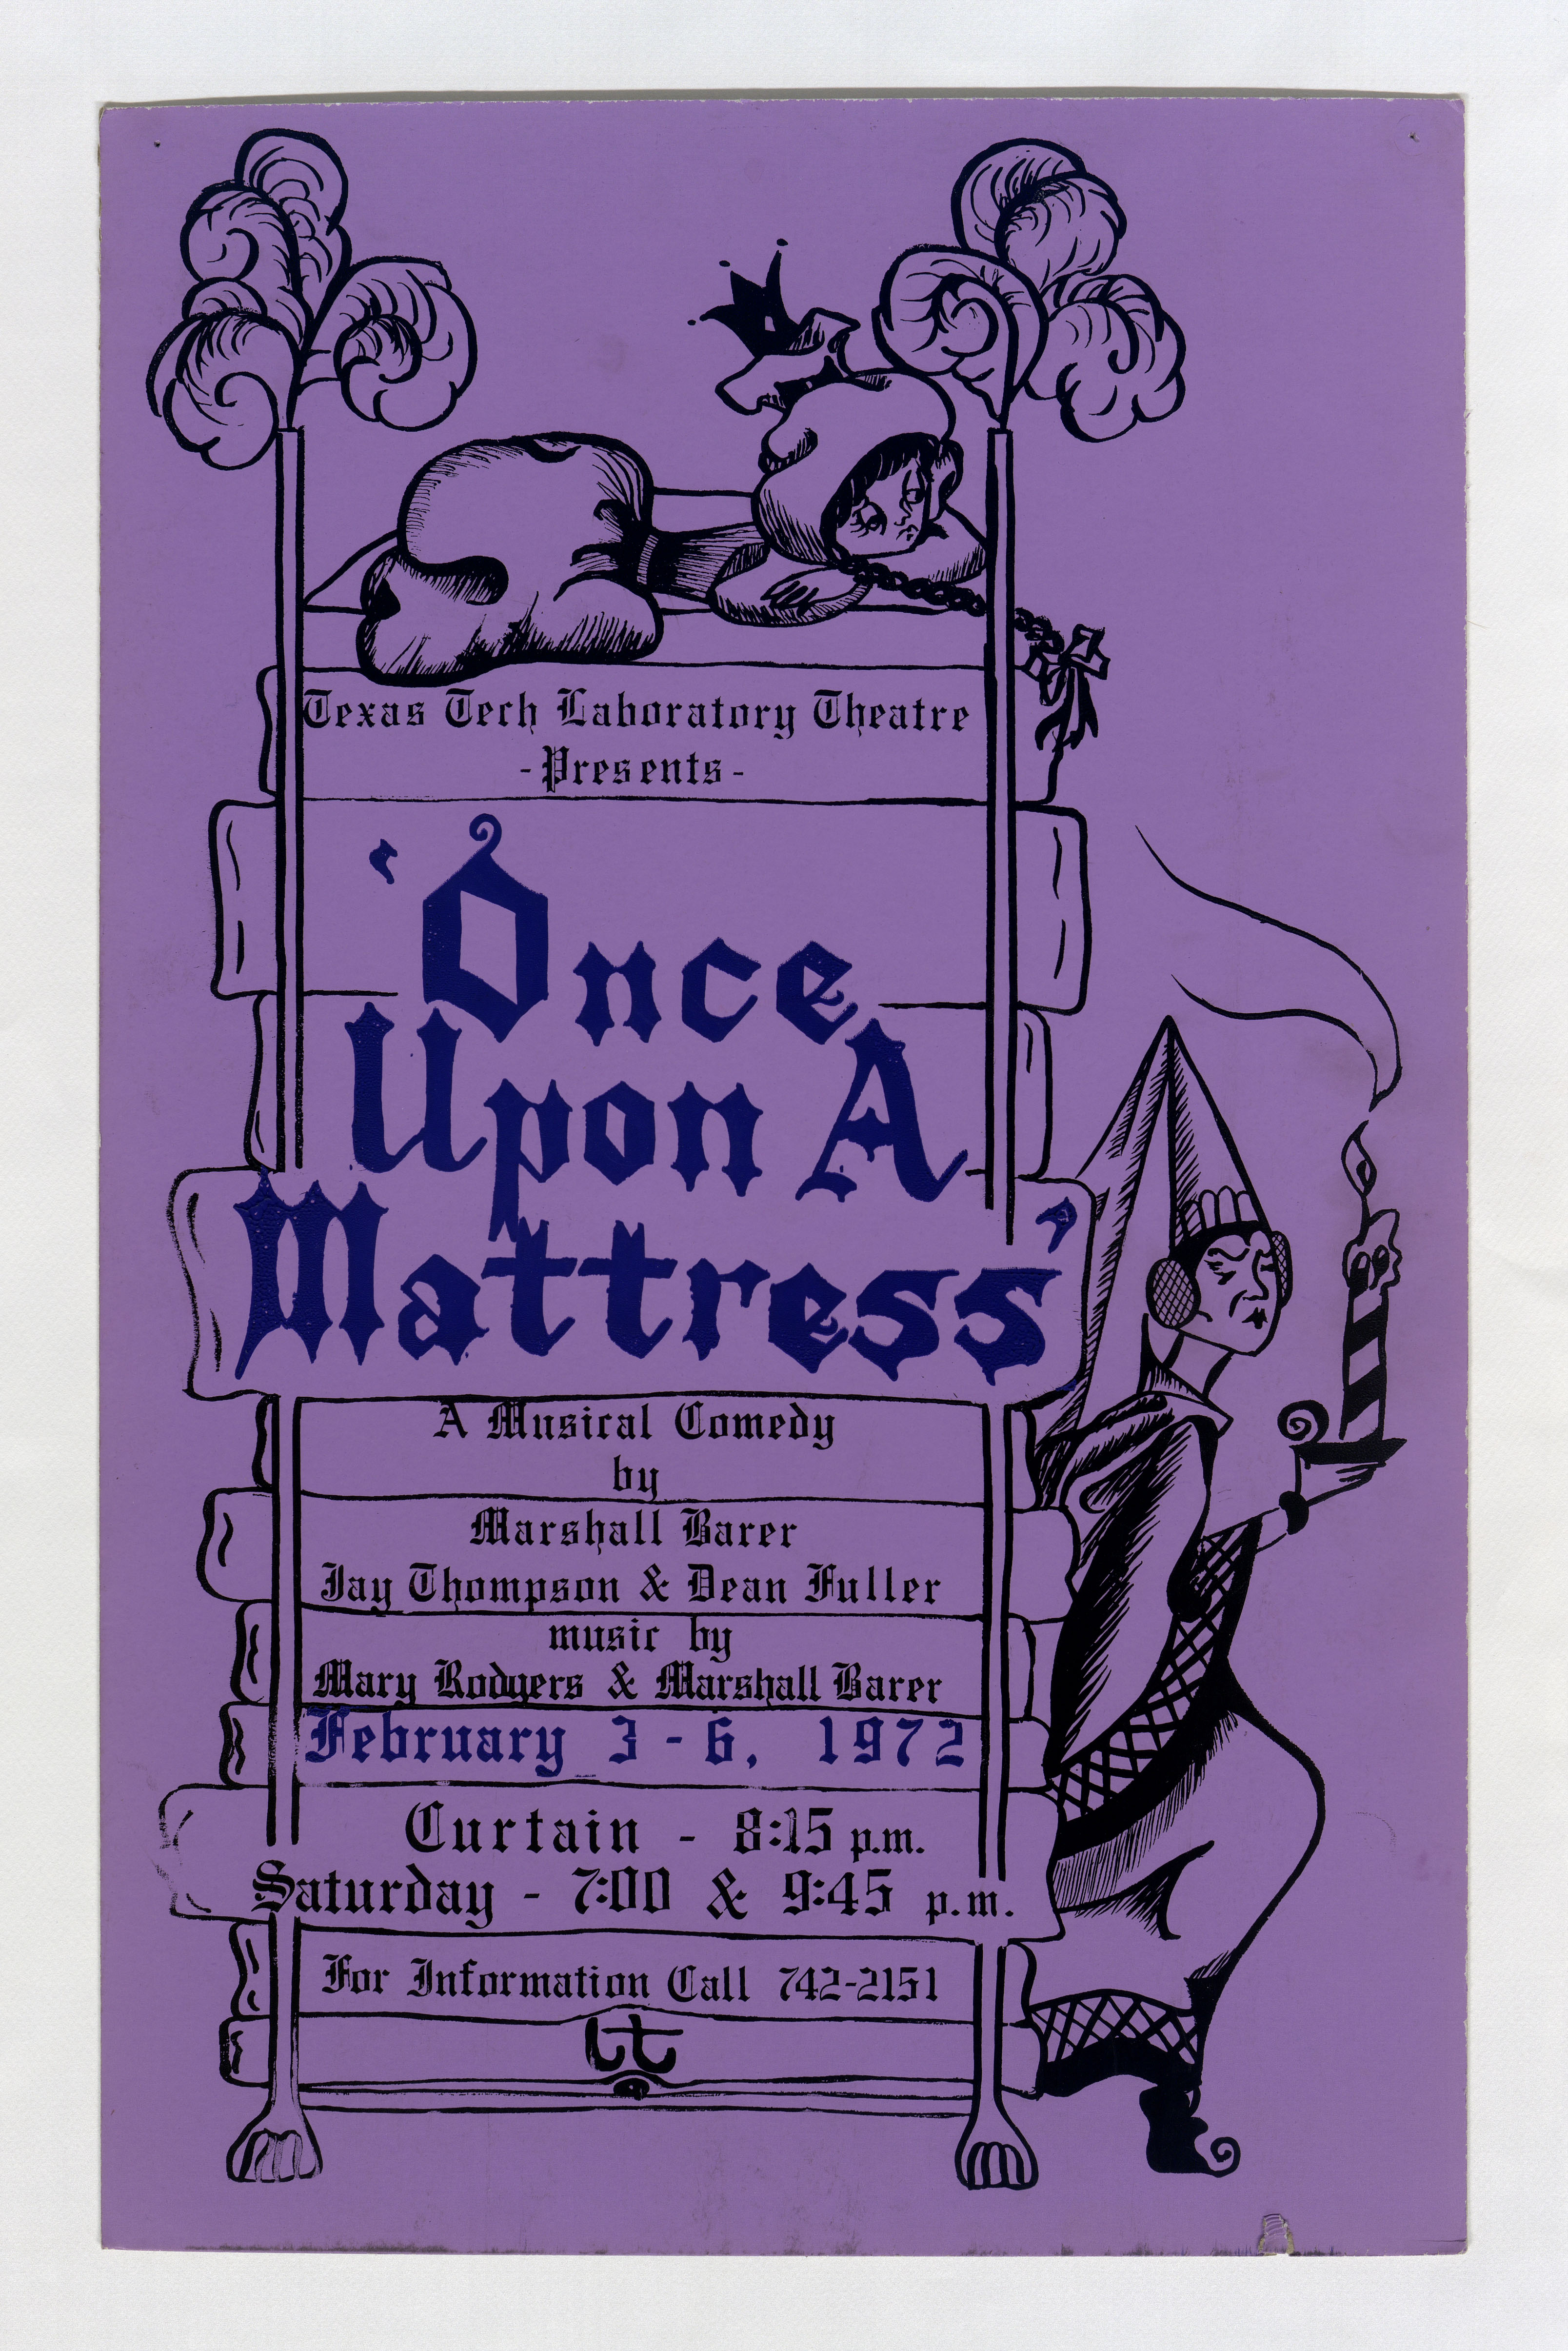 """Poster for a musical comedy """"Once Upon A Mattress"""" by Marshall Barer, Jay  Thompson, Dean Fuller, & Mary Rodgers"""